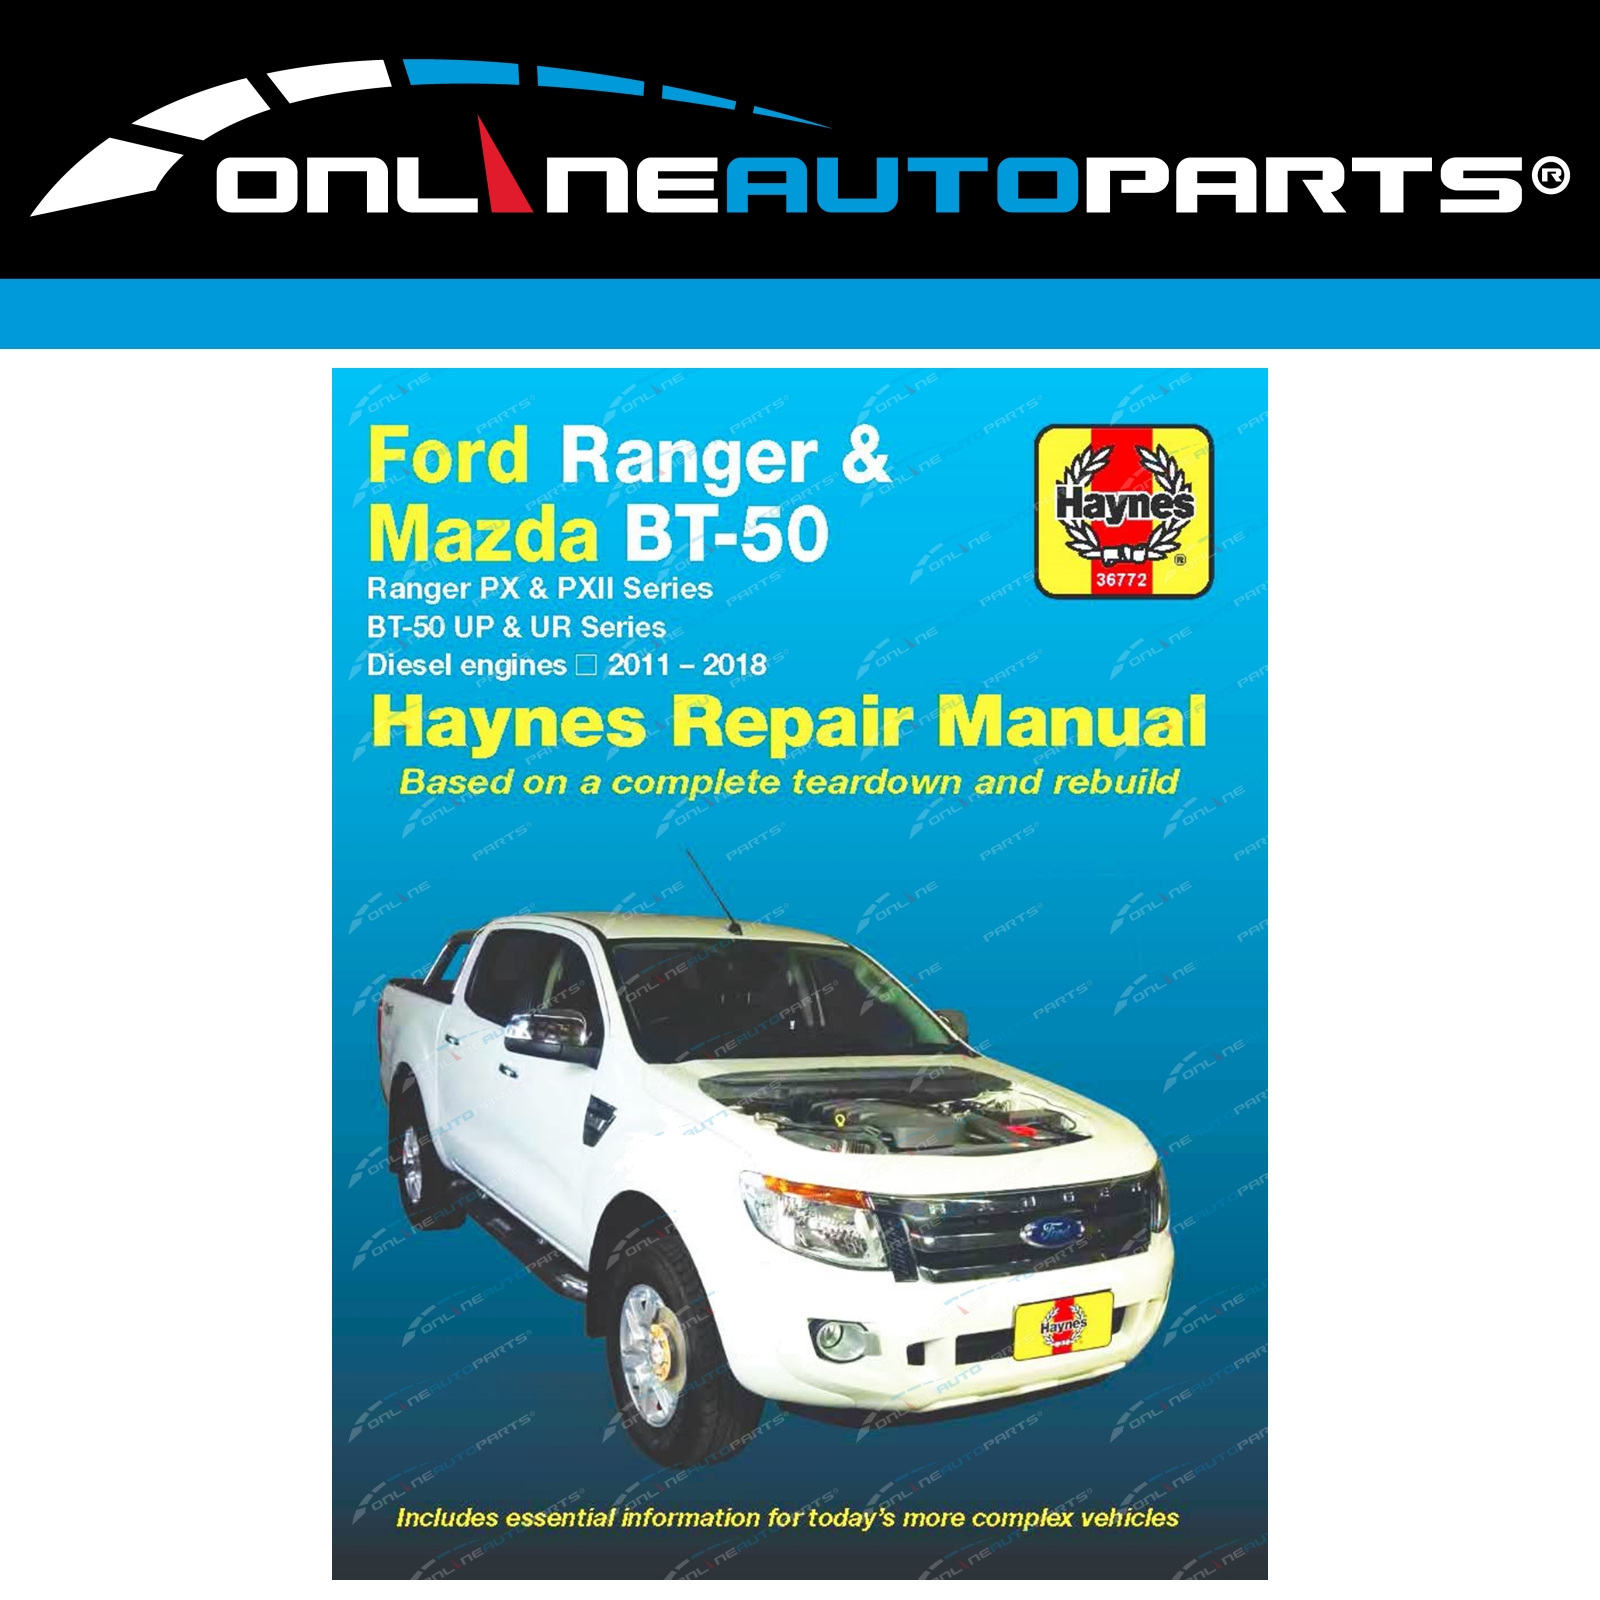 Haynes Car Repair Manual Book Ford Ranger PX Mazda BT-50 UP UR Diesel P4AT